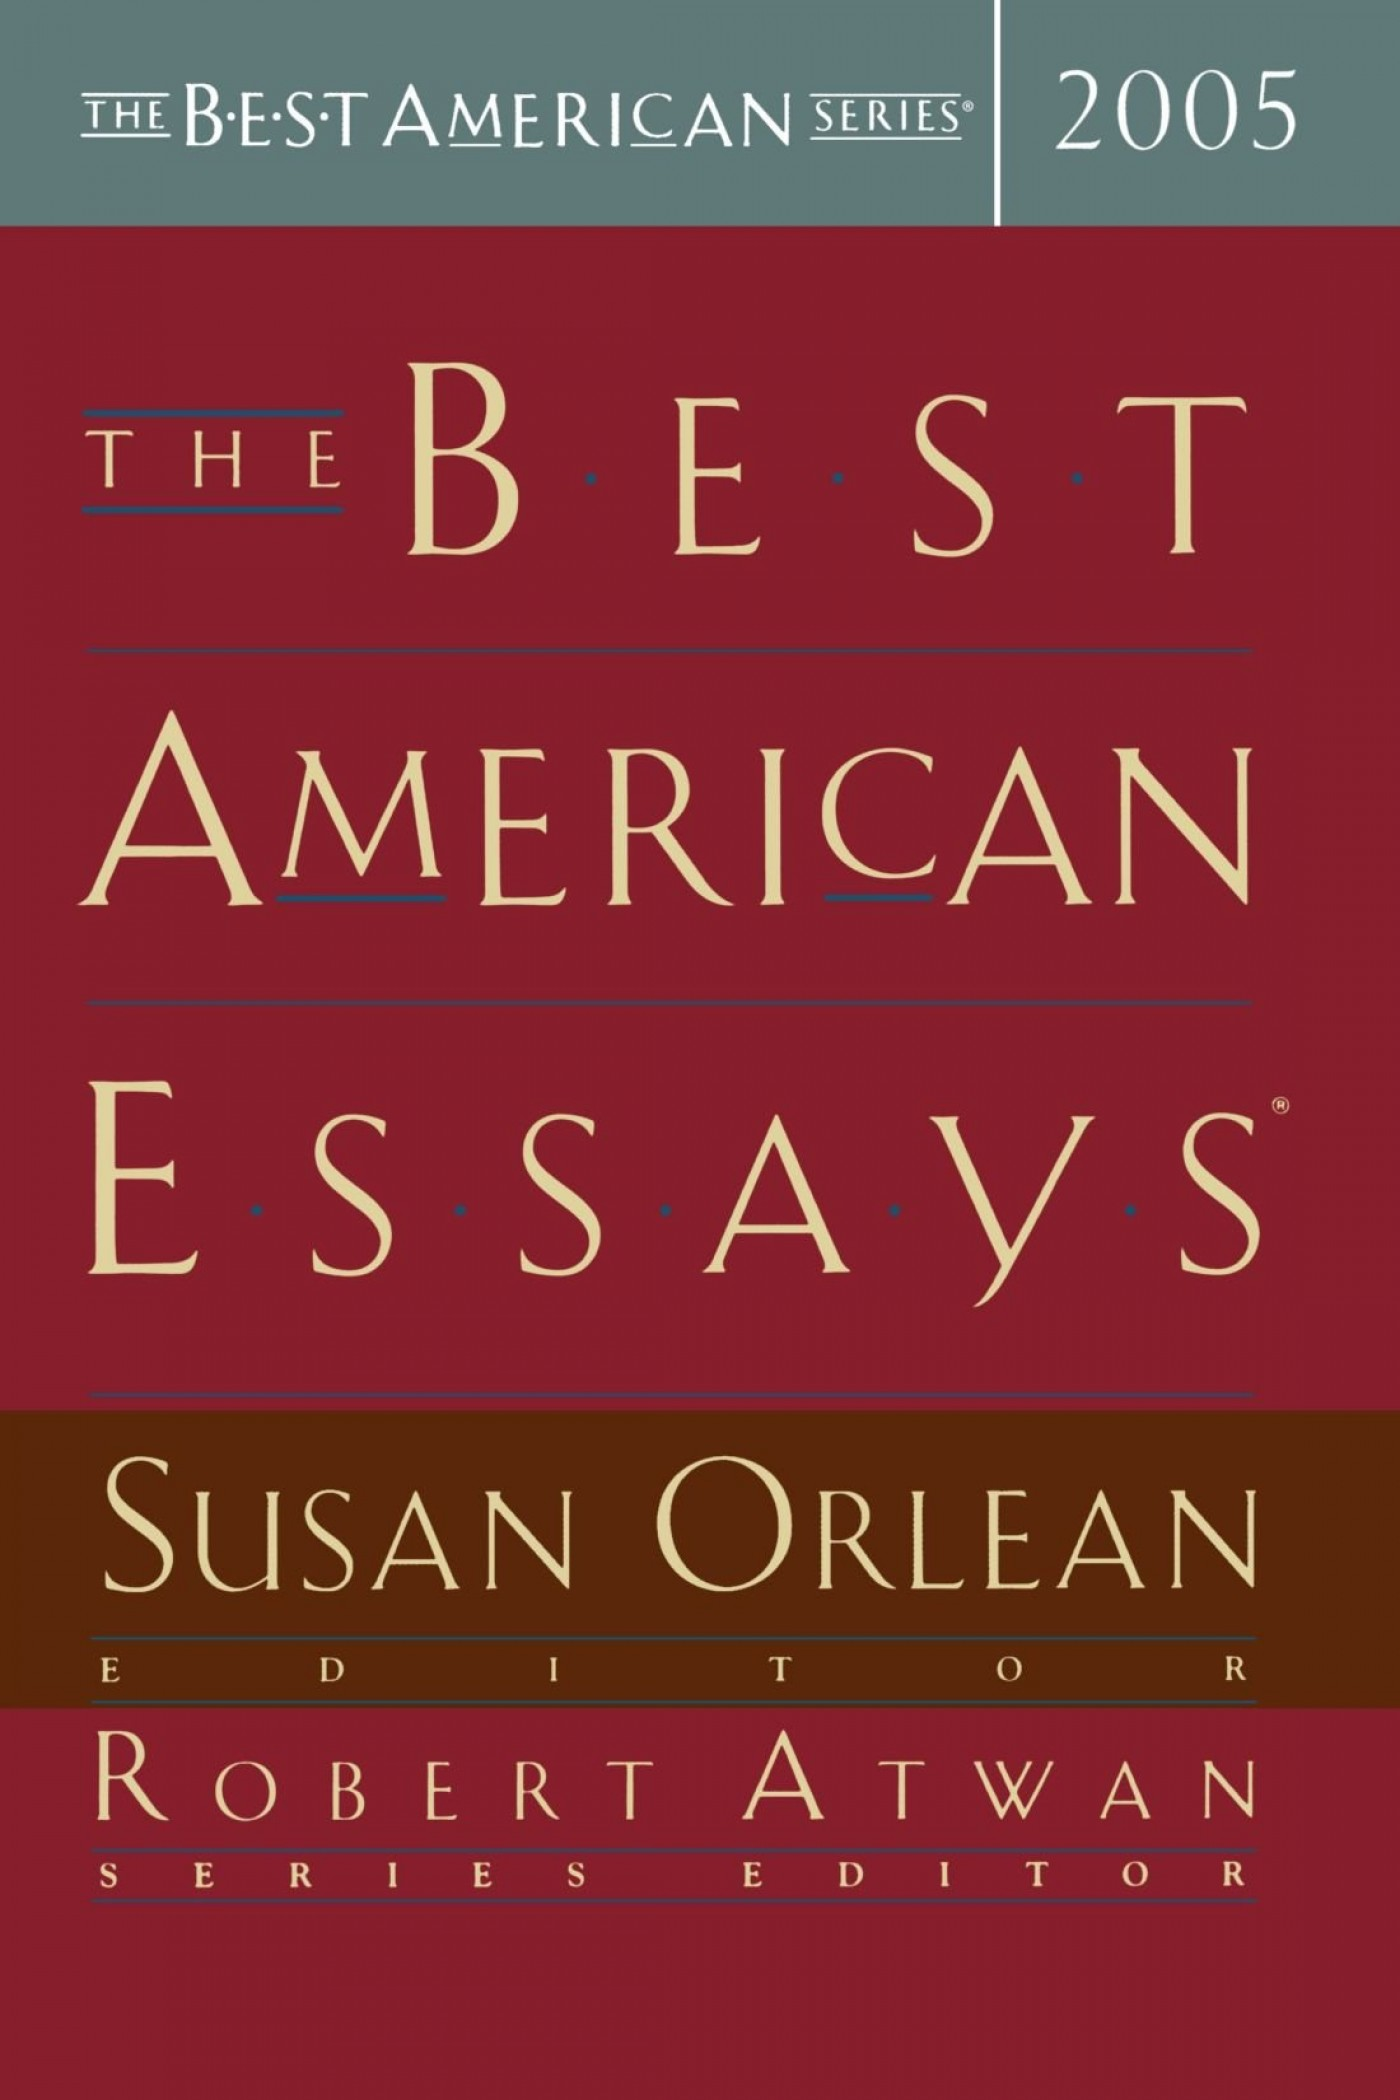 009 Essay Example 61eba7rjfxl The Best American Wonderful Essays 2013 Pdf Download Of Century Sparknotes 2017 1400